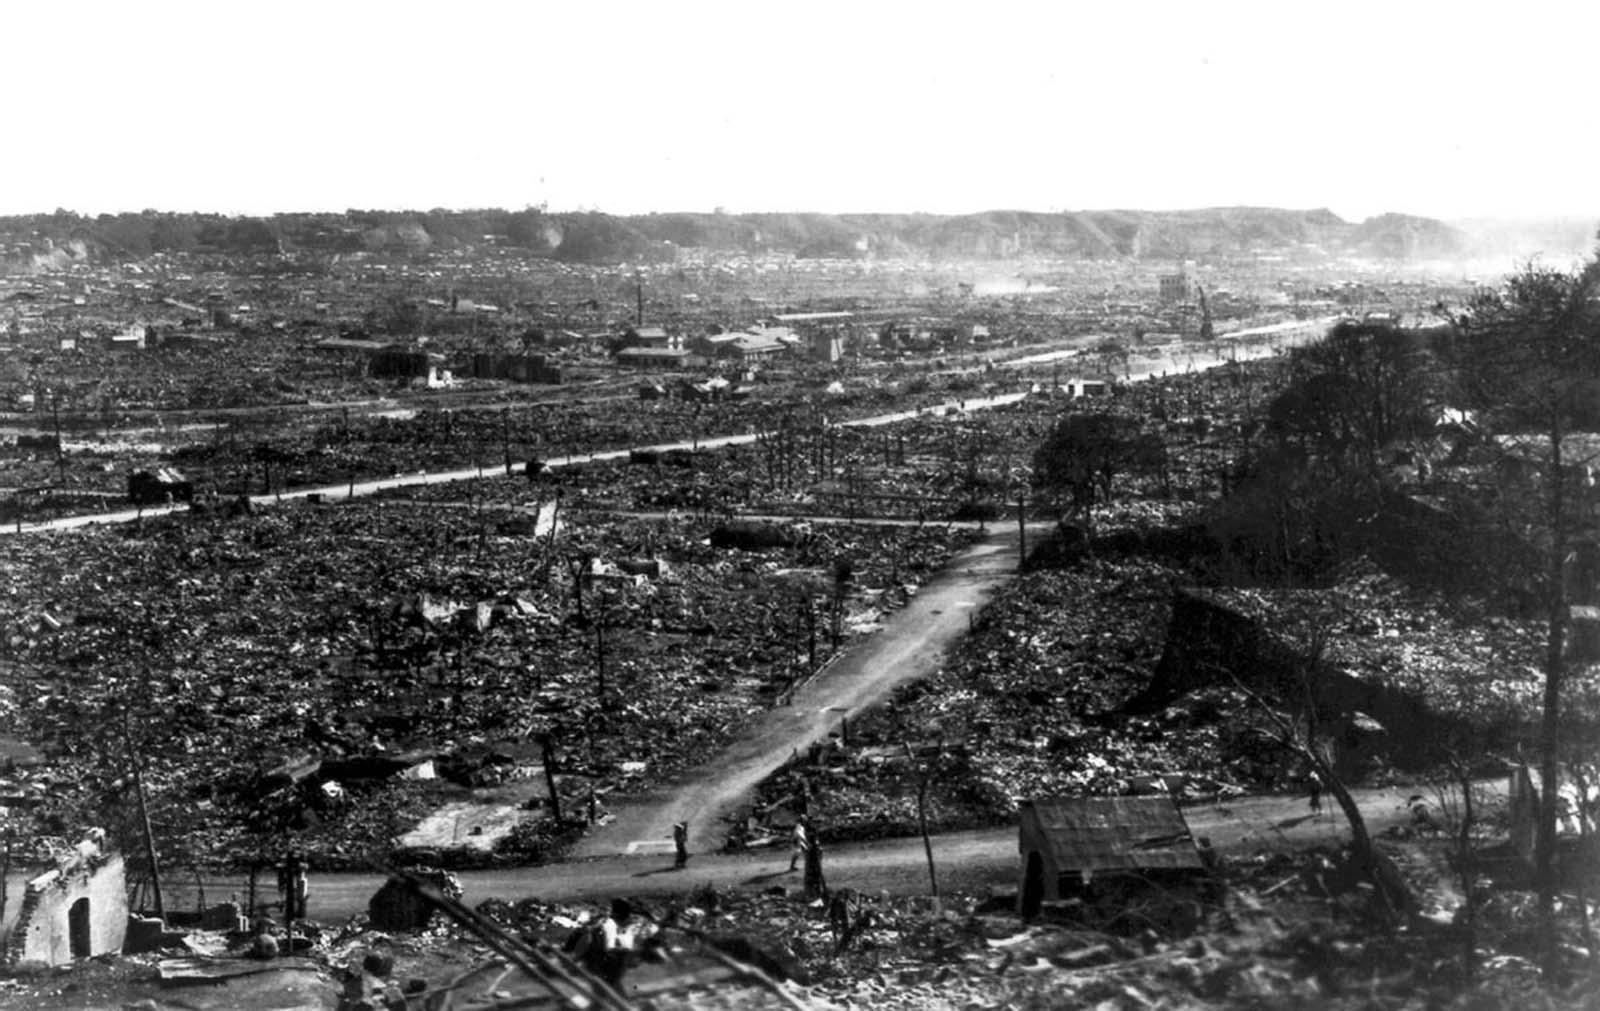 A view of the devastation in Tokyo after the 1923 earthquake and fire, seen from the top of the Imperial Hotel in Tokyo.